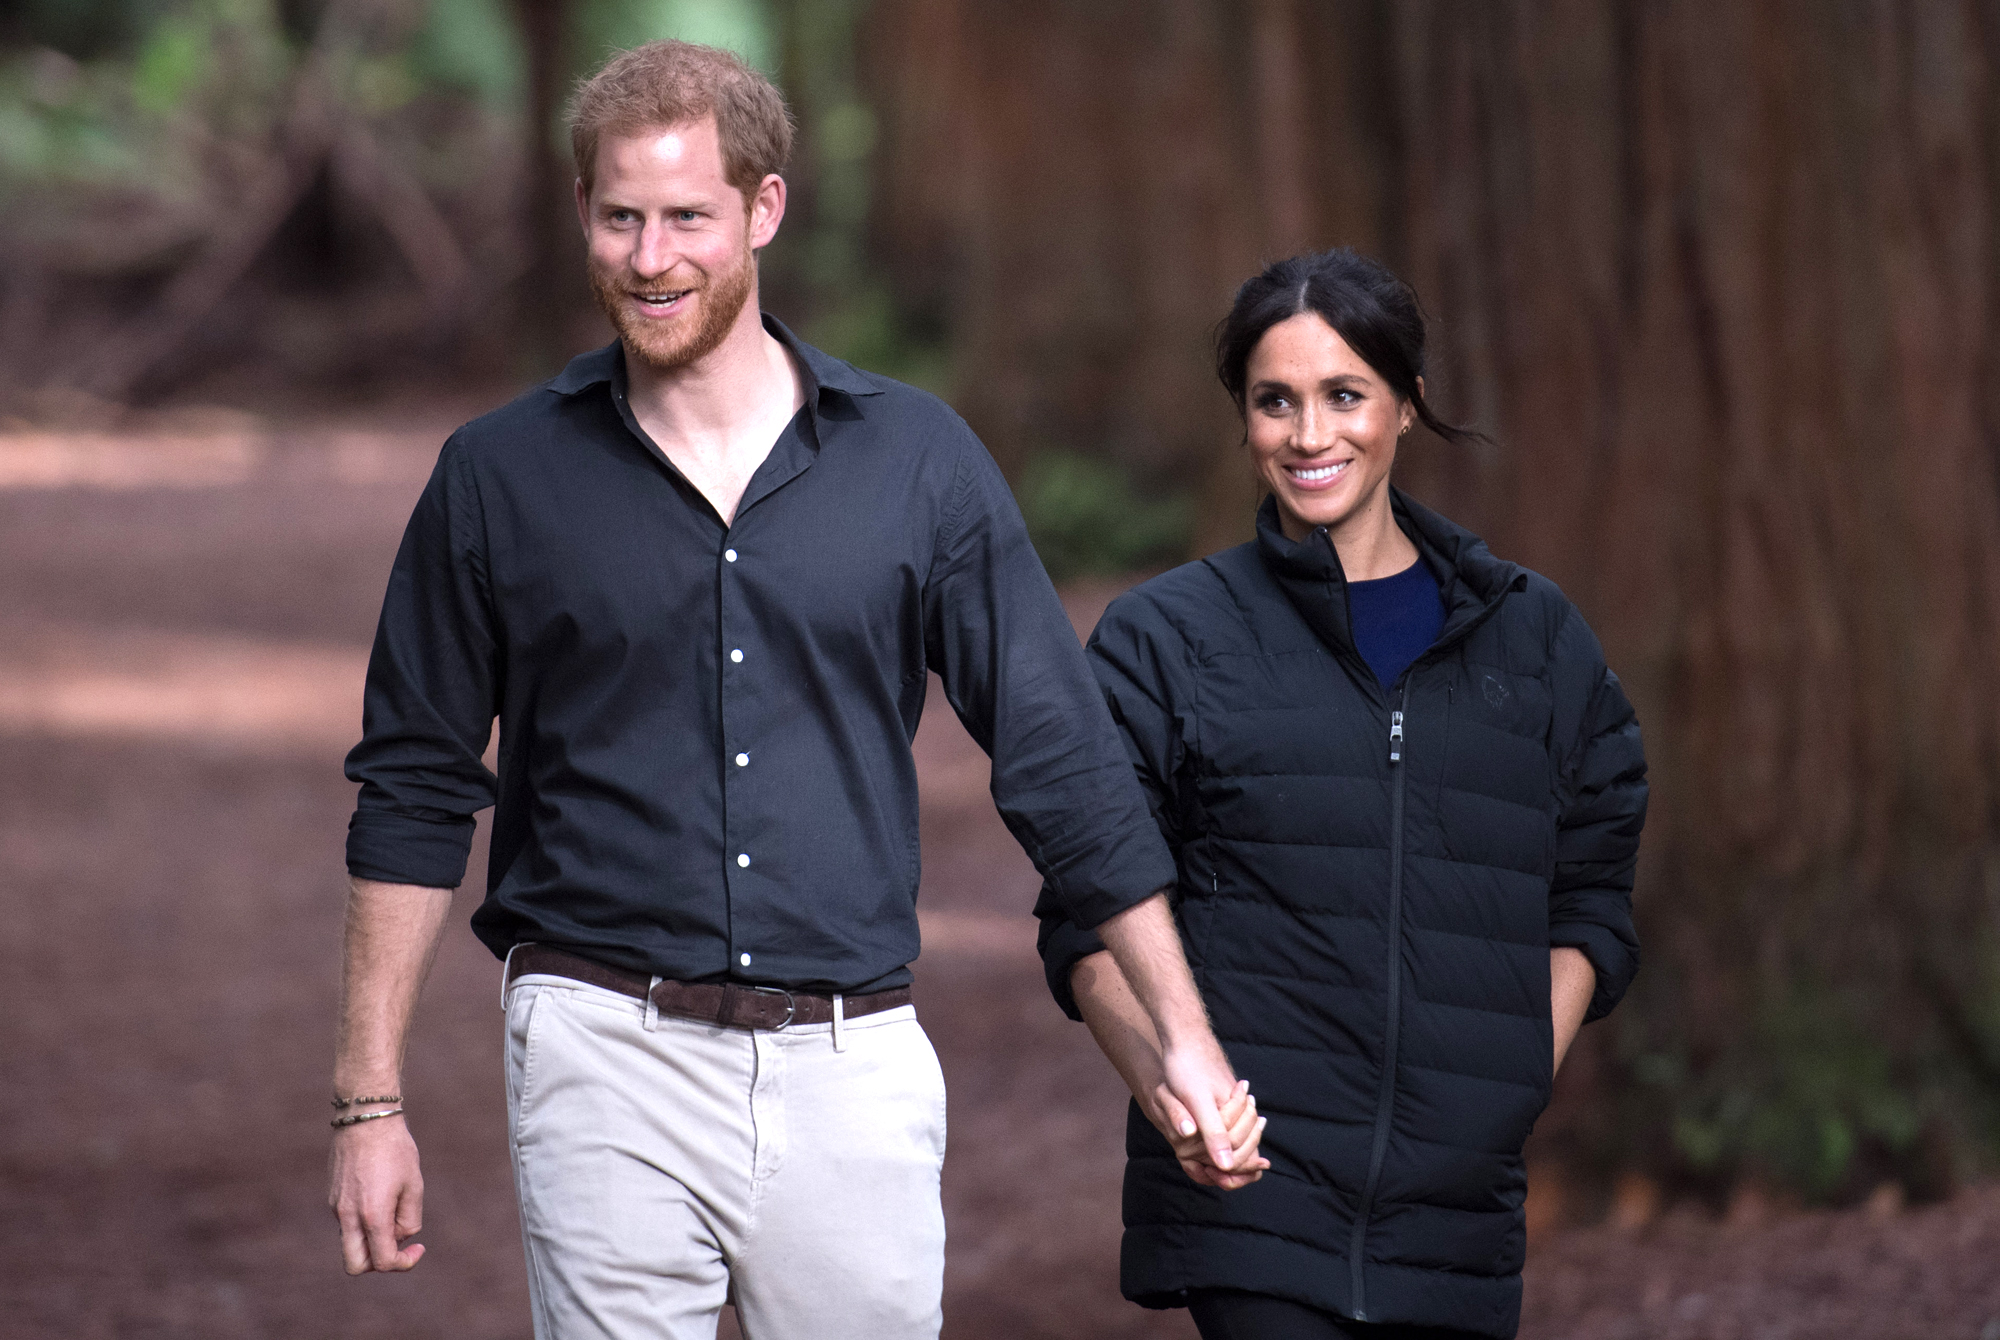 Prince Harry and Meghan Duchess of Sussex tour of New Zealand - 31 Oct 2018